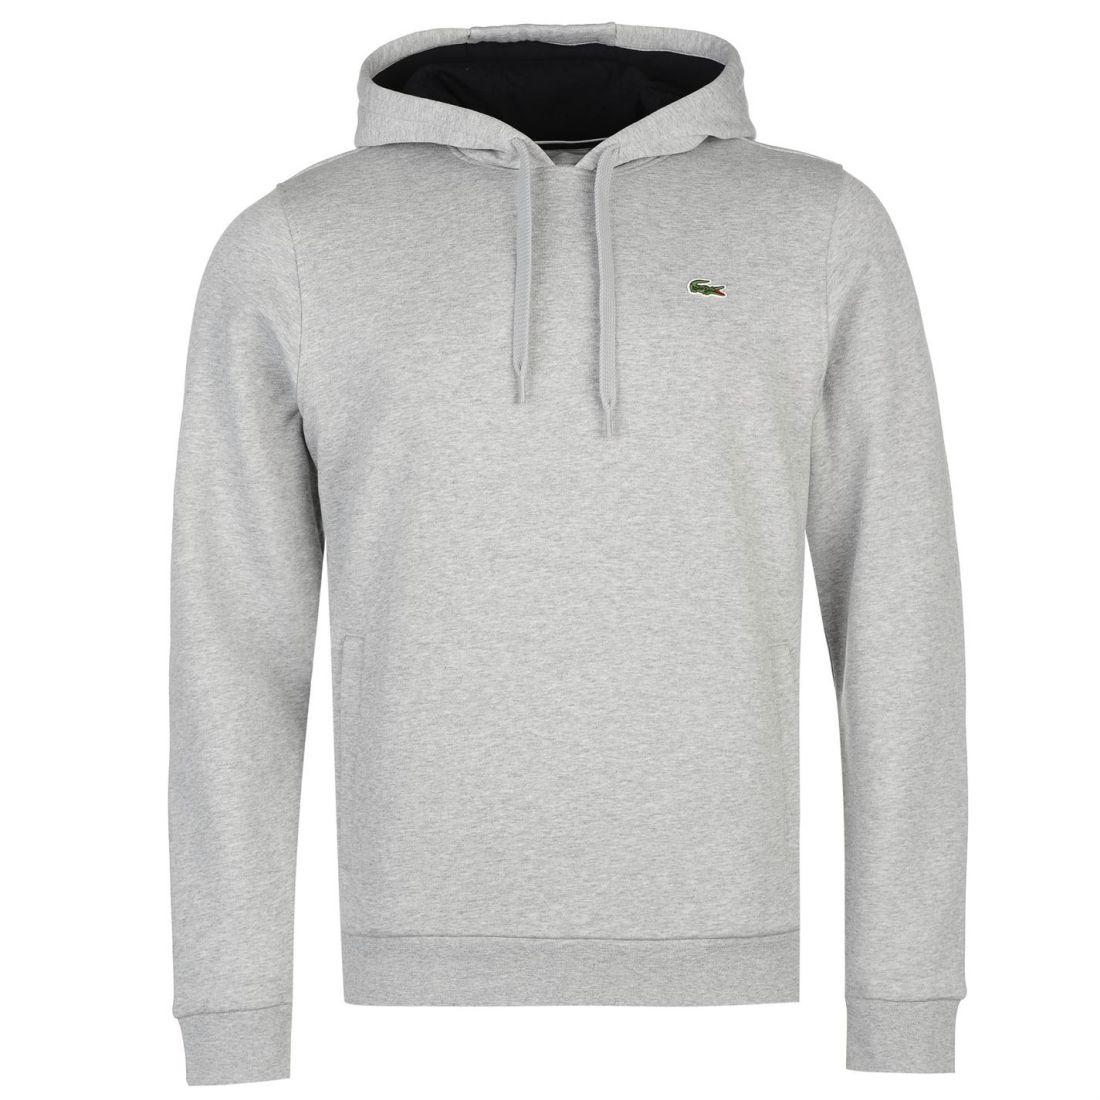 6e9eb46b46f325 Image is loading Lacoste-Over-The-Head-Basic-Hoodie-OTH-Mens